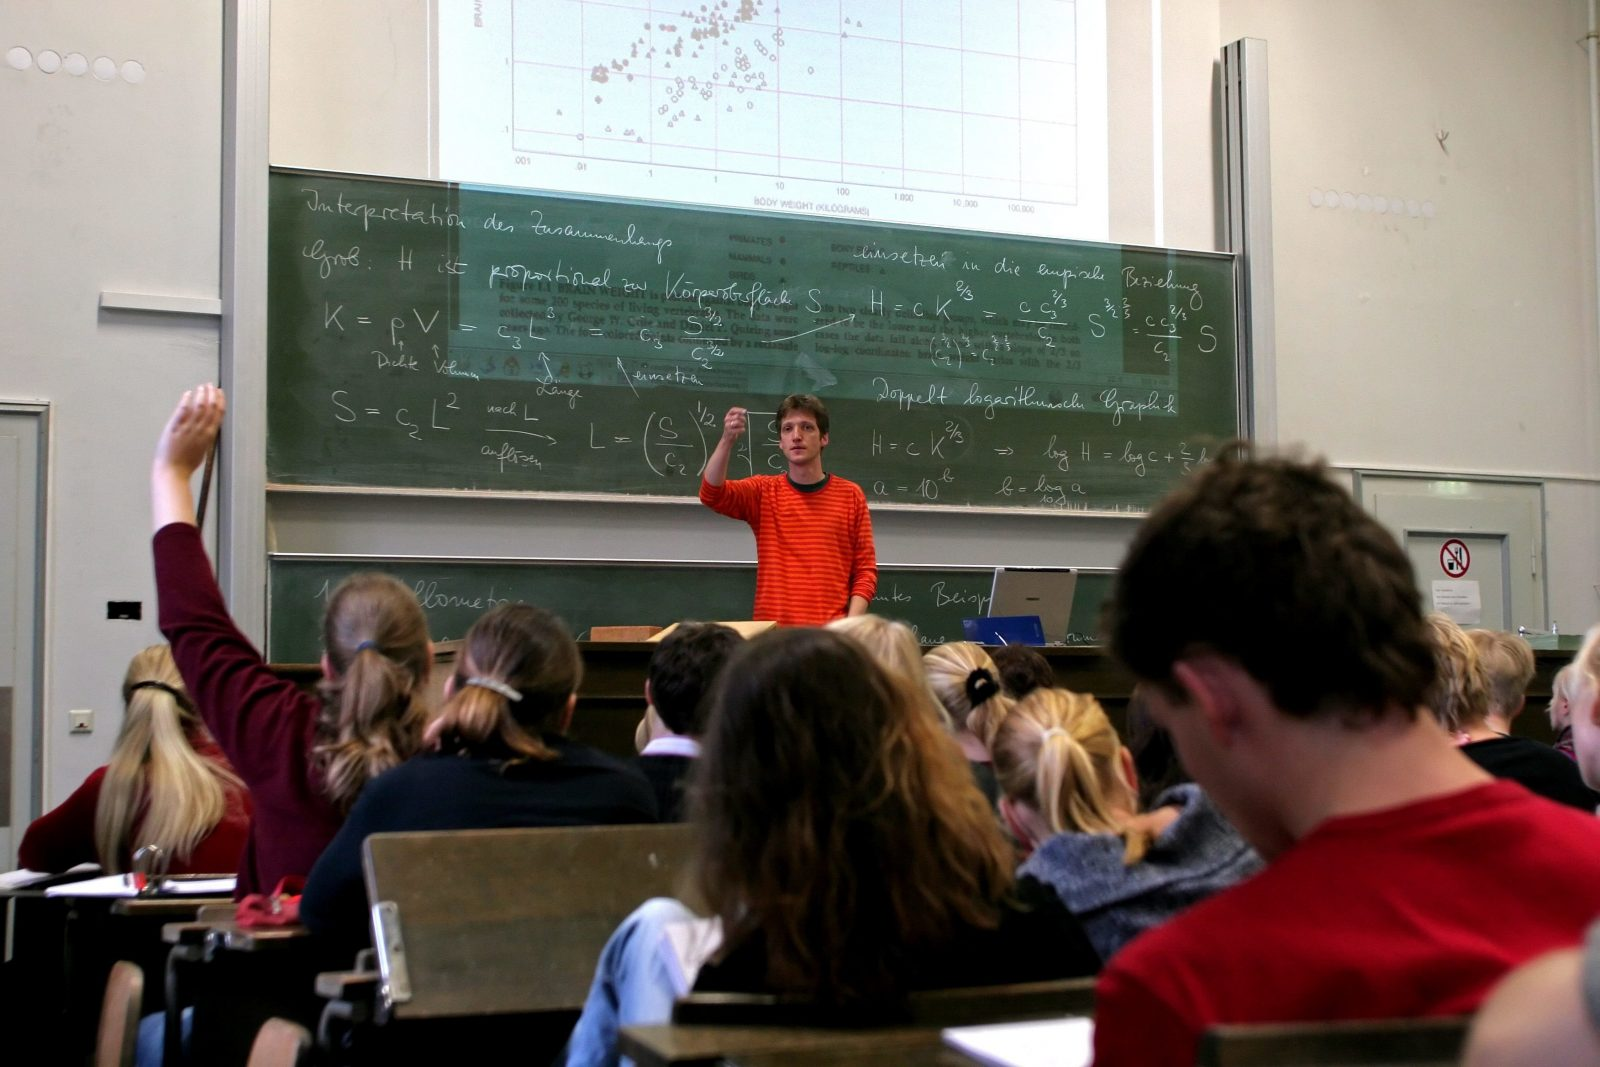 Studenten folgen einer Mathematikvorlesung an der Universität Bonn (Archivbild) Foto: picture alliance/JOKER